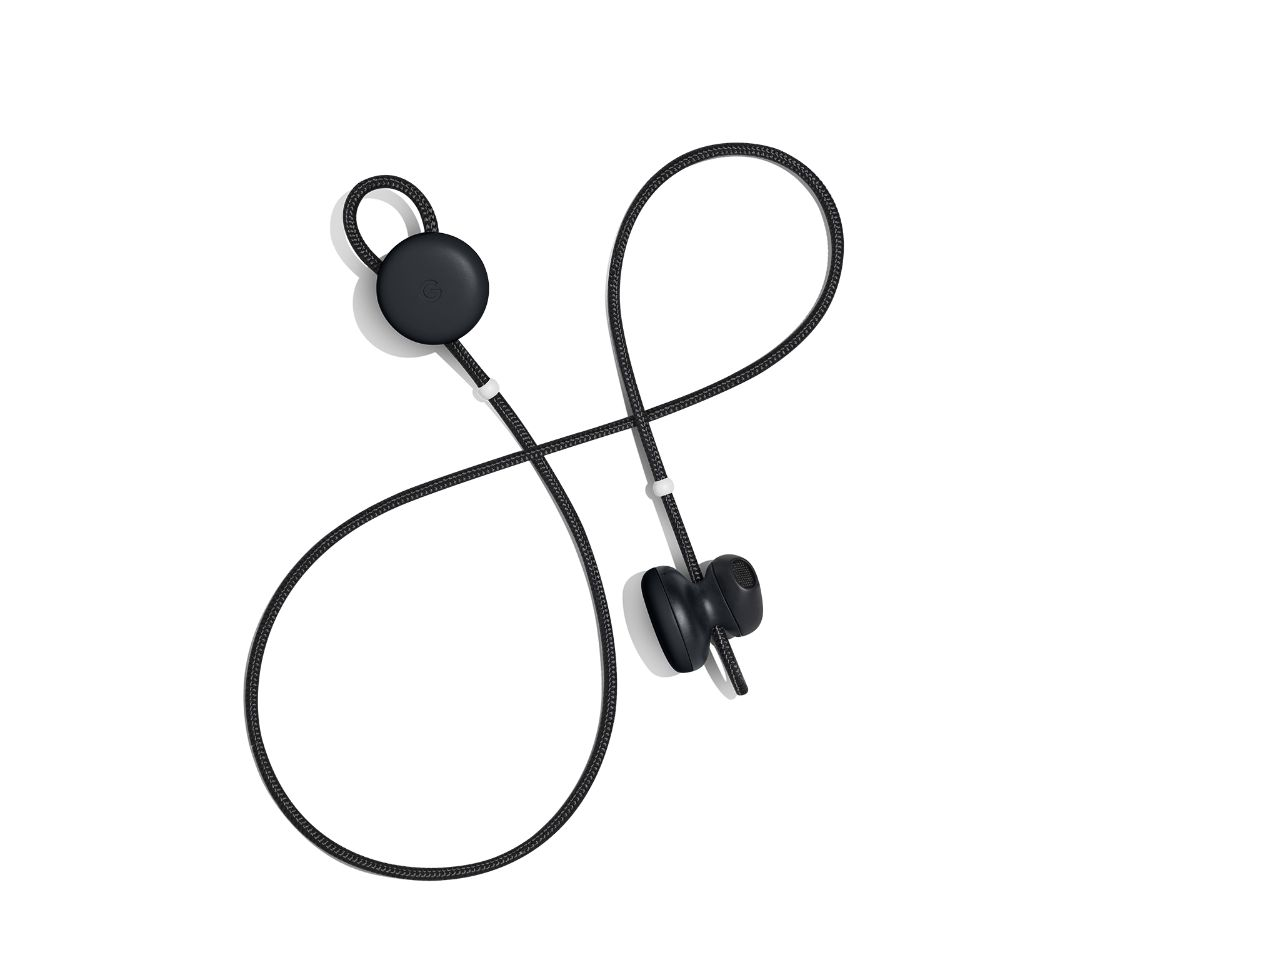 Google's Pixel Buds have started shipping